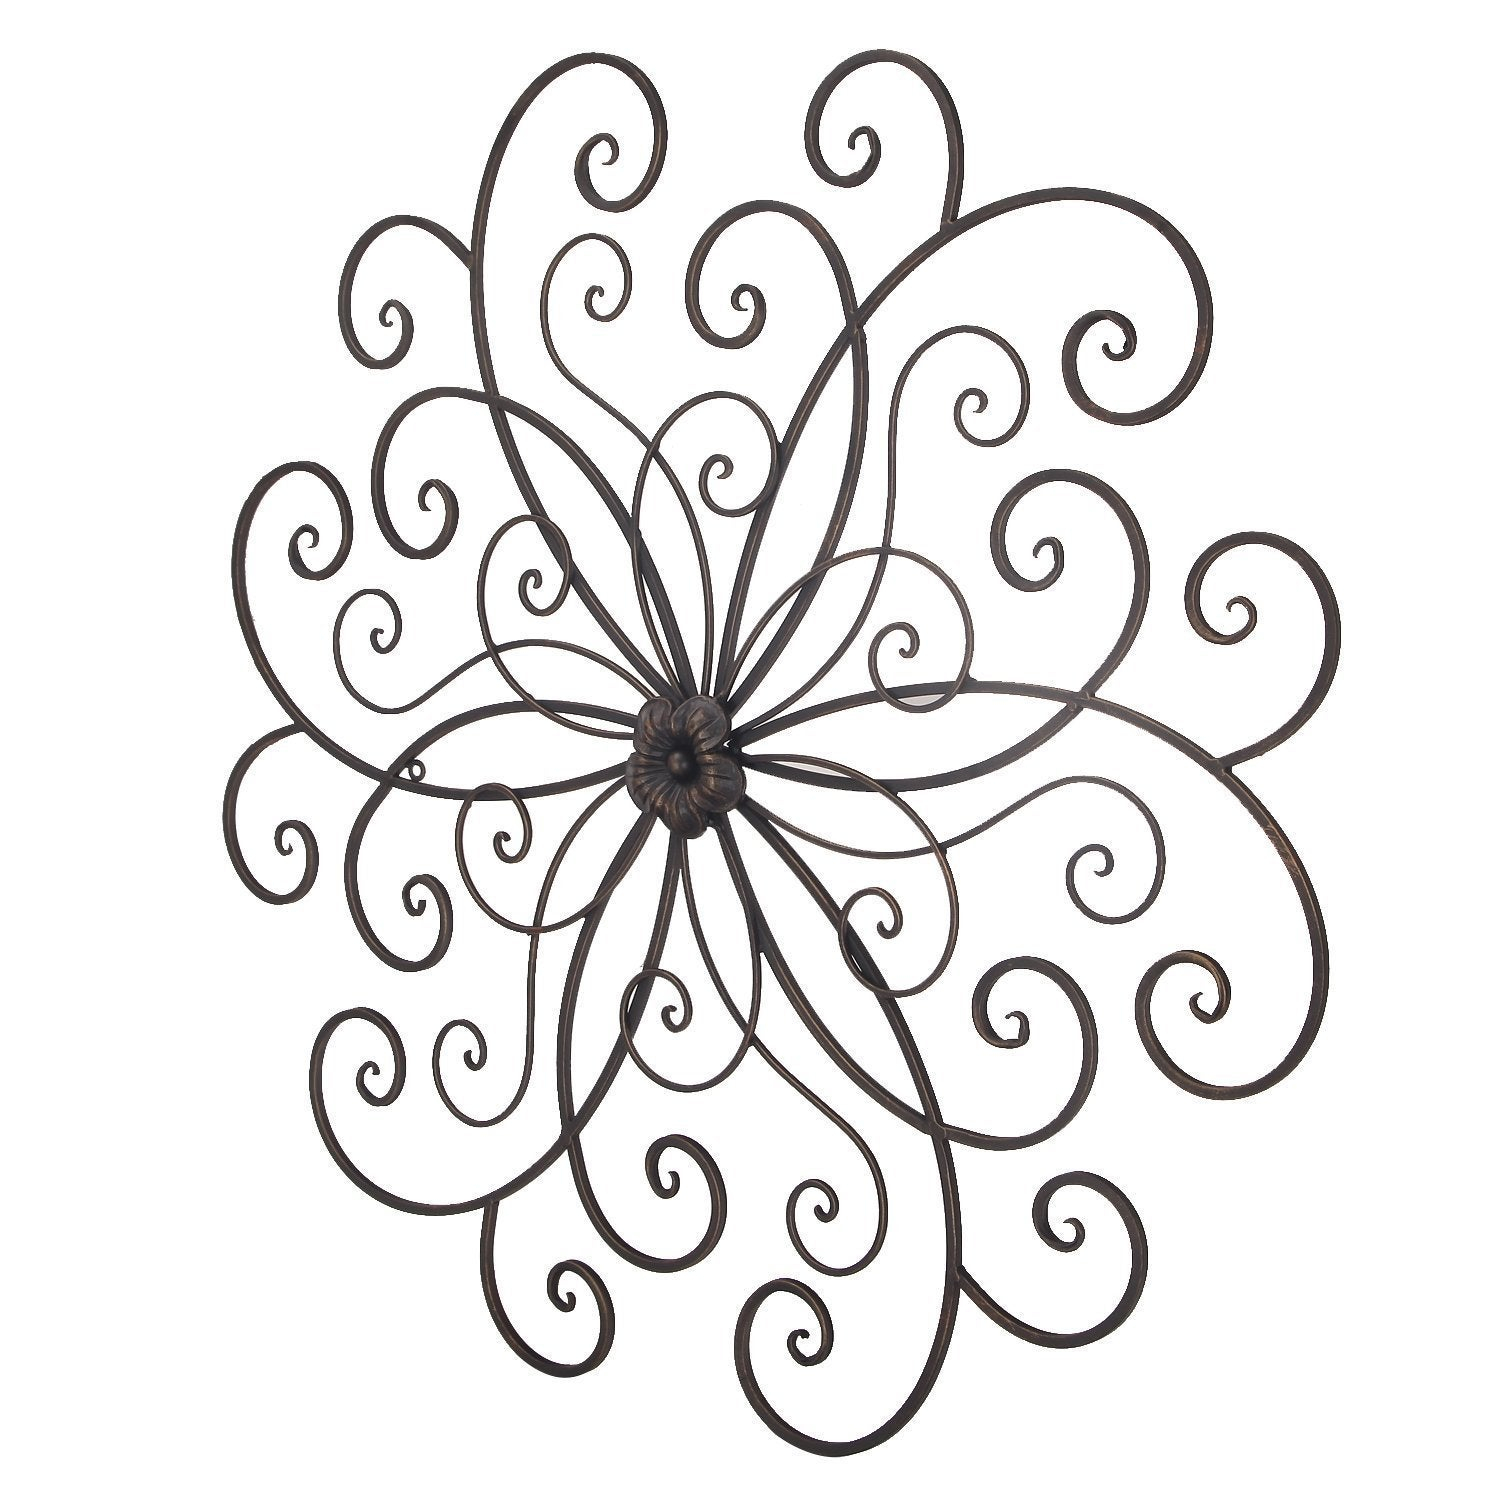 Adeco Bronze Flower Urban Design Metal Wall Decor For Nature Home Art Pertaining To Flower Urban Design Metal Wall Decor (View 8 of 30)